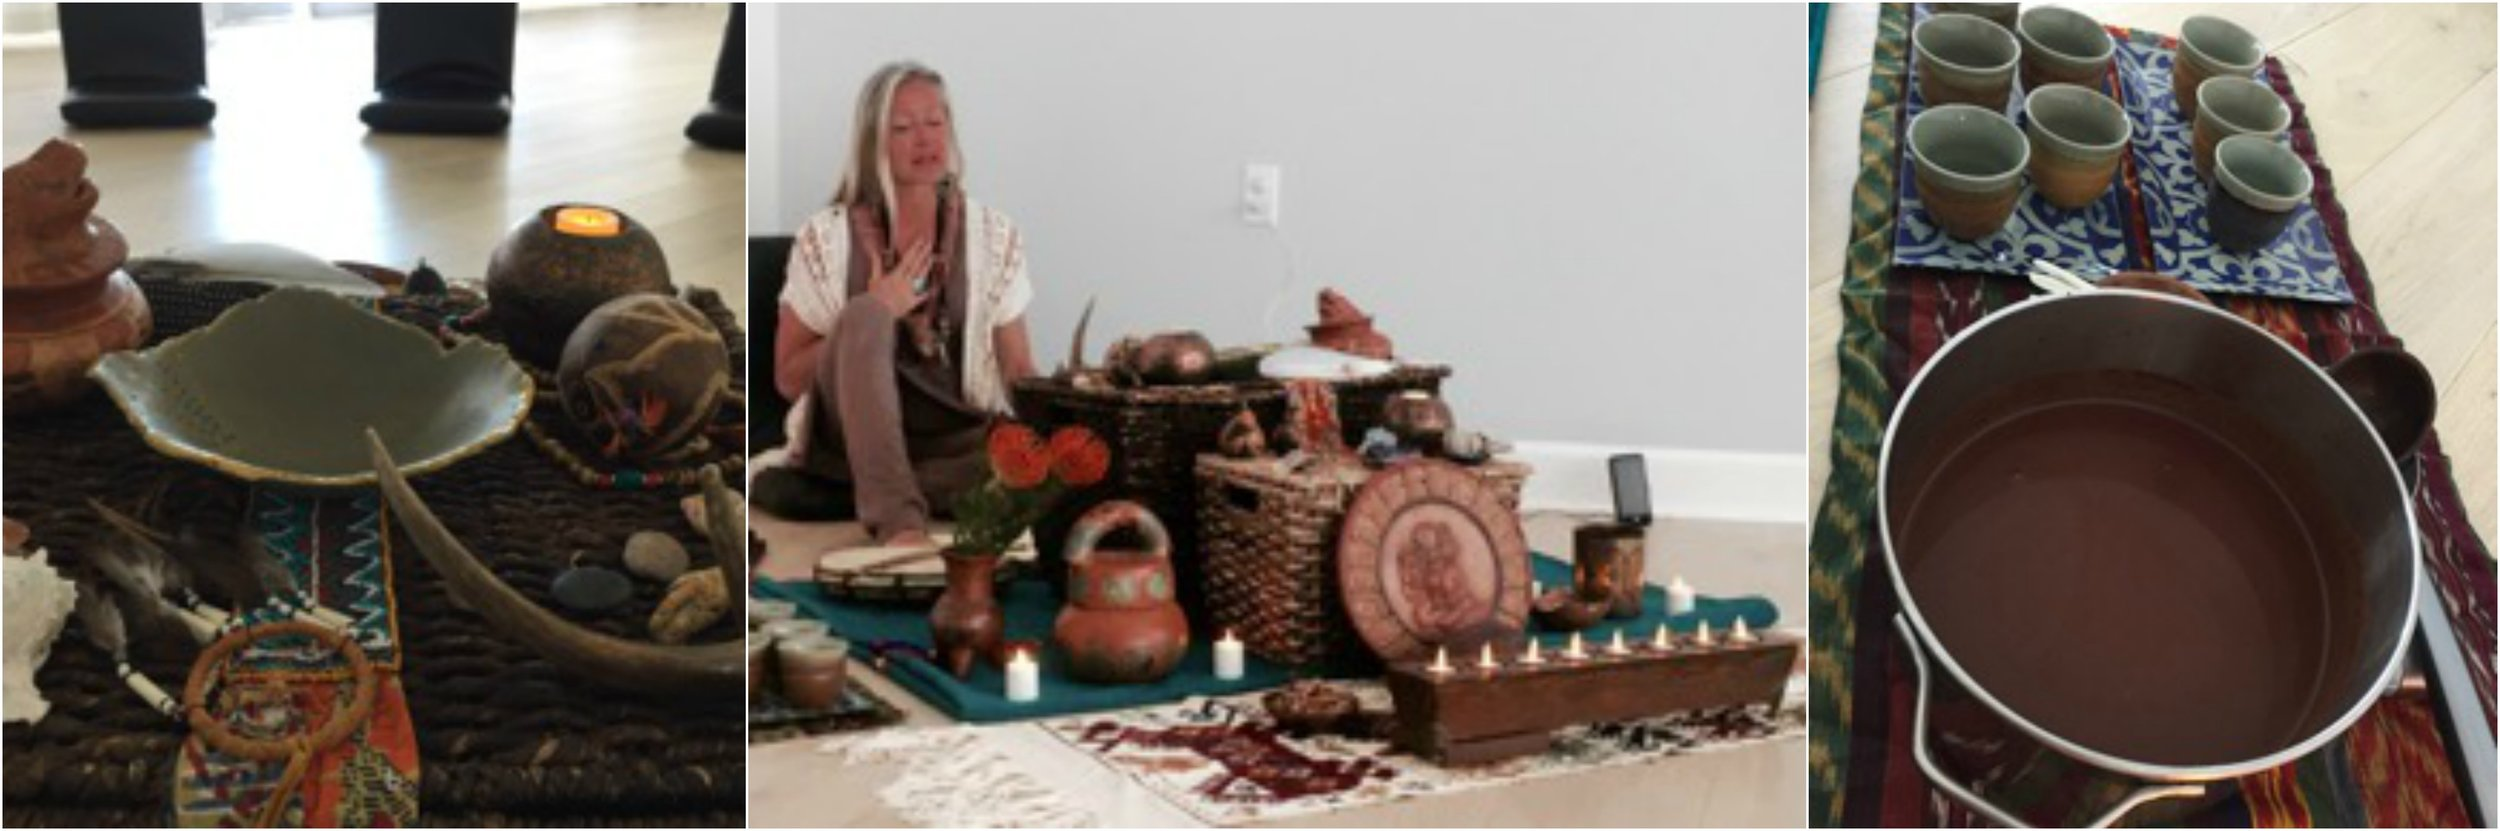 sacred cacao ceremony_ Soulstice Mind Body Spa.jpg